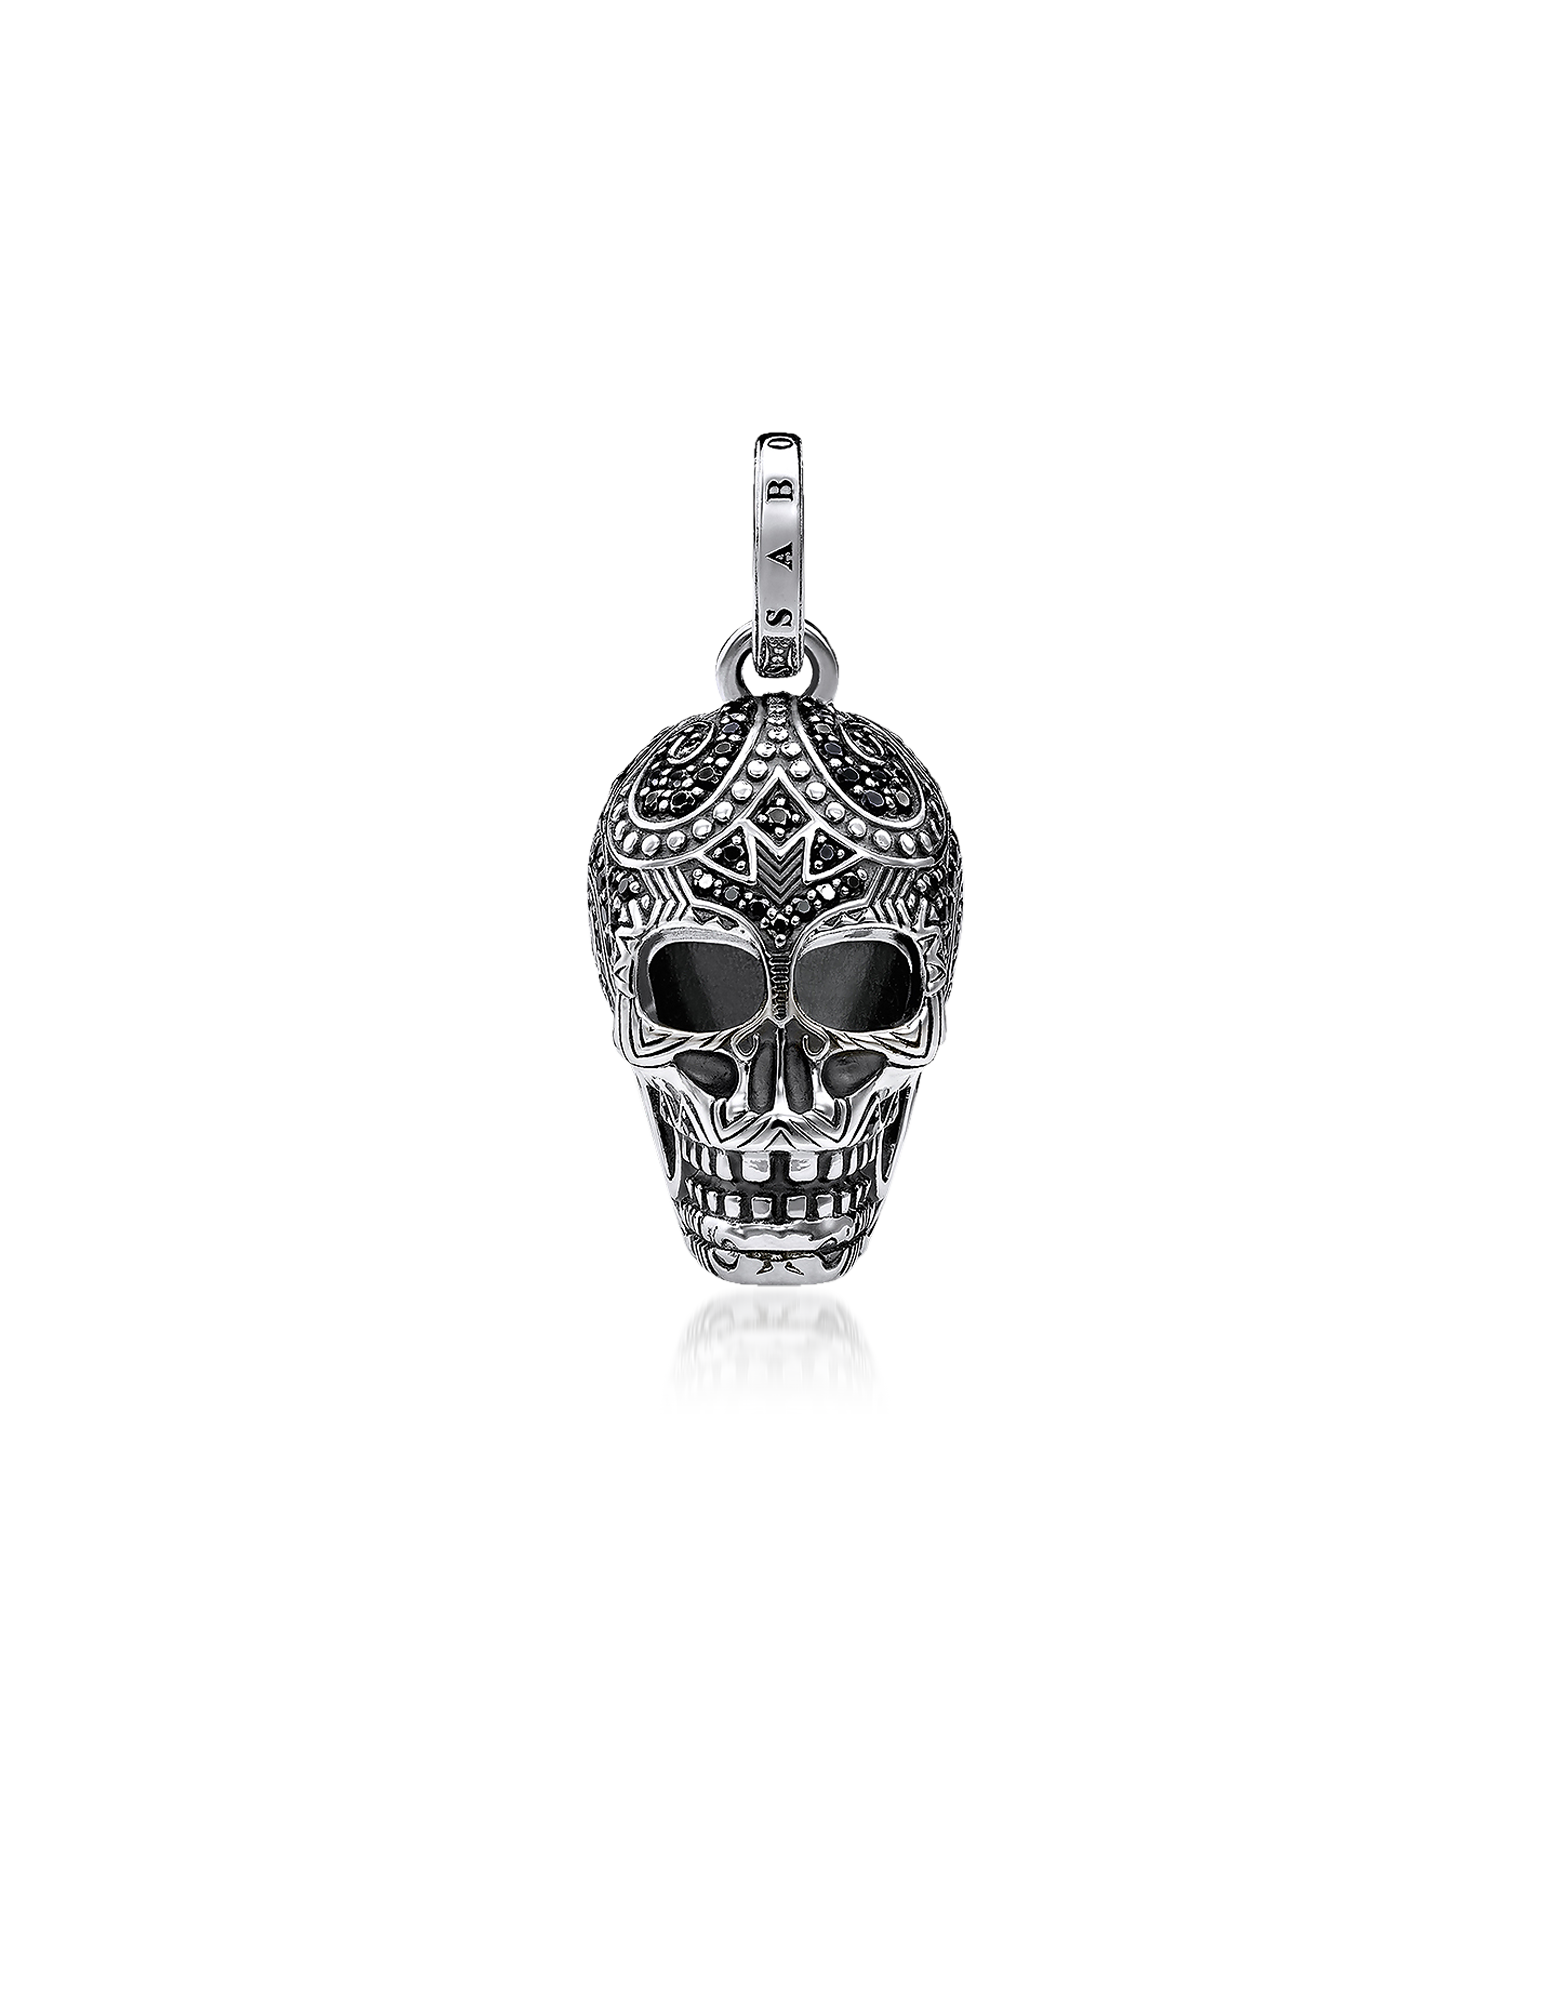 Image of Blackened 925 Sterling Silver and Zirconia Maori Skull Pendant